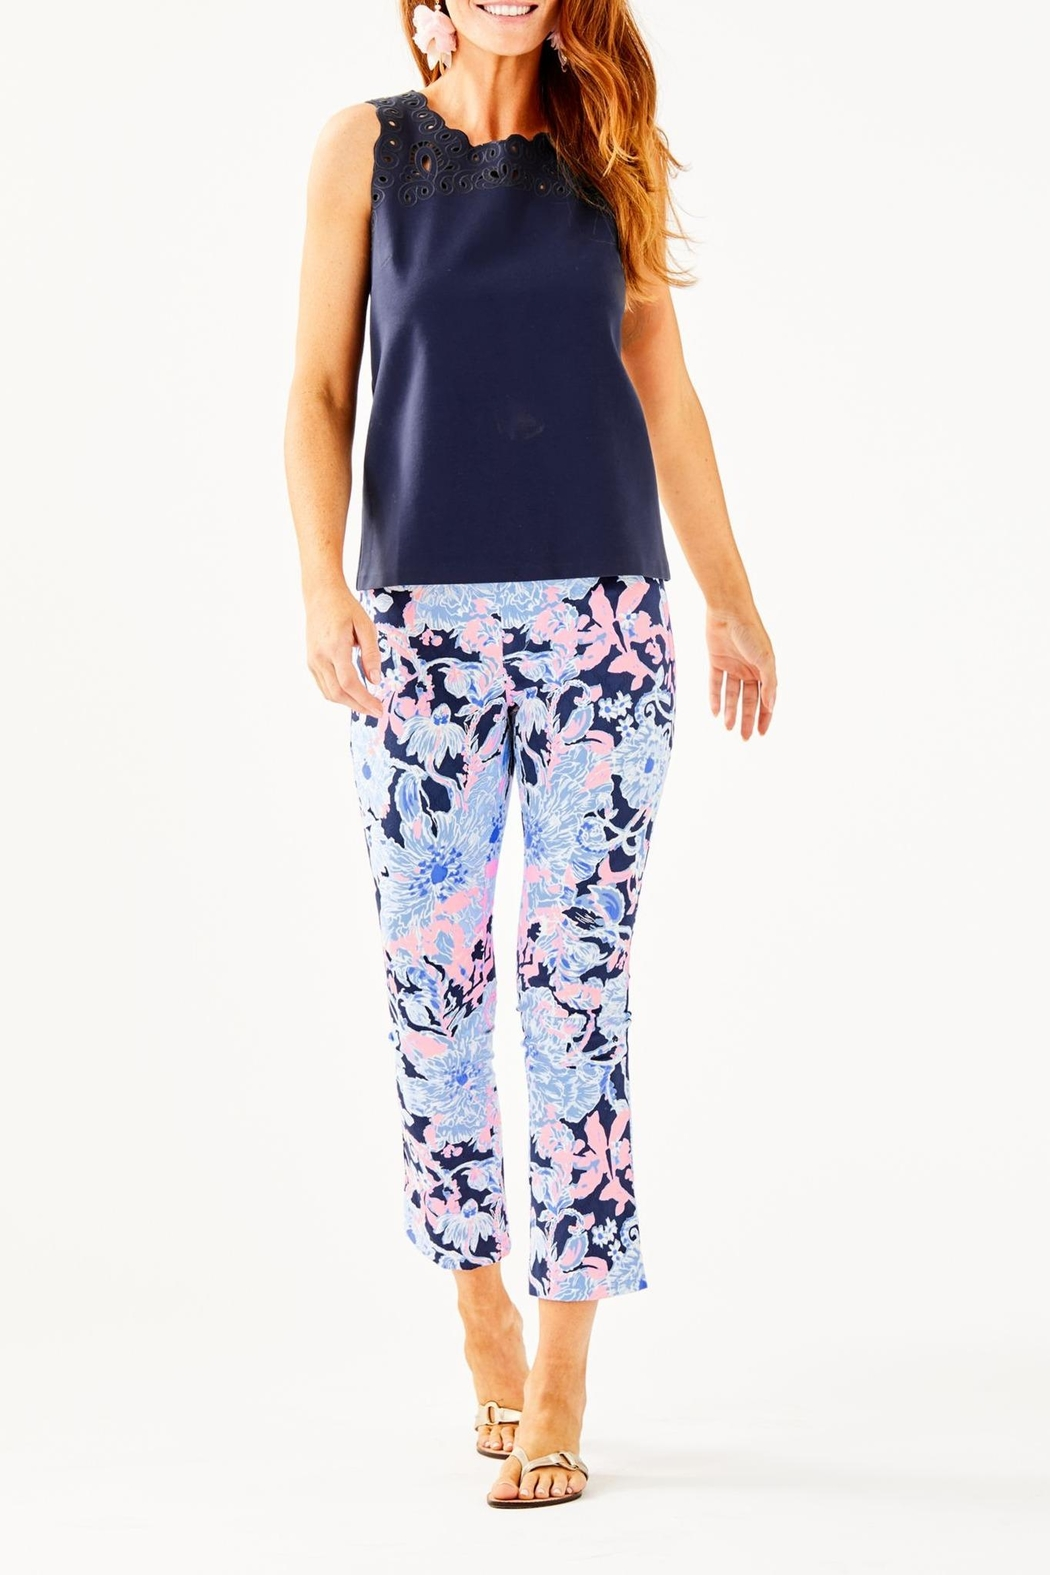 Lilly Pulitzer Edie Top - Side Cropped Image